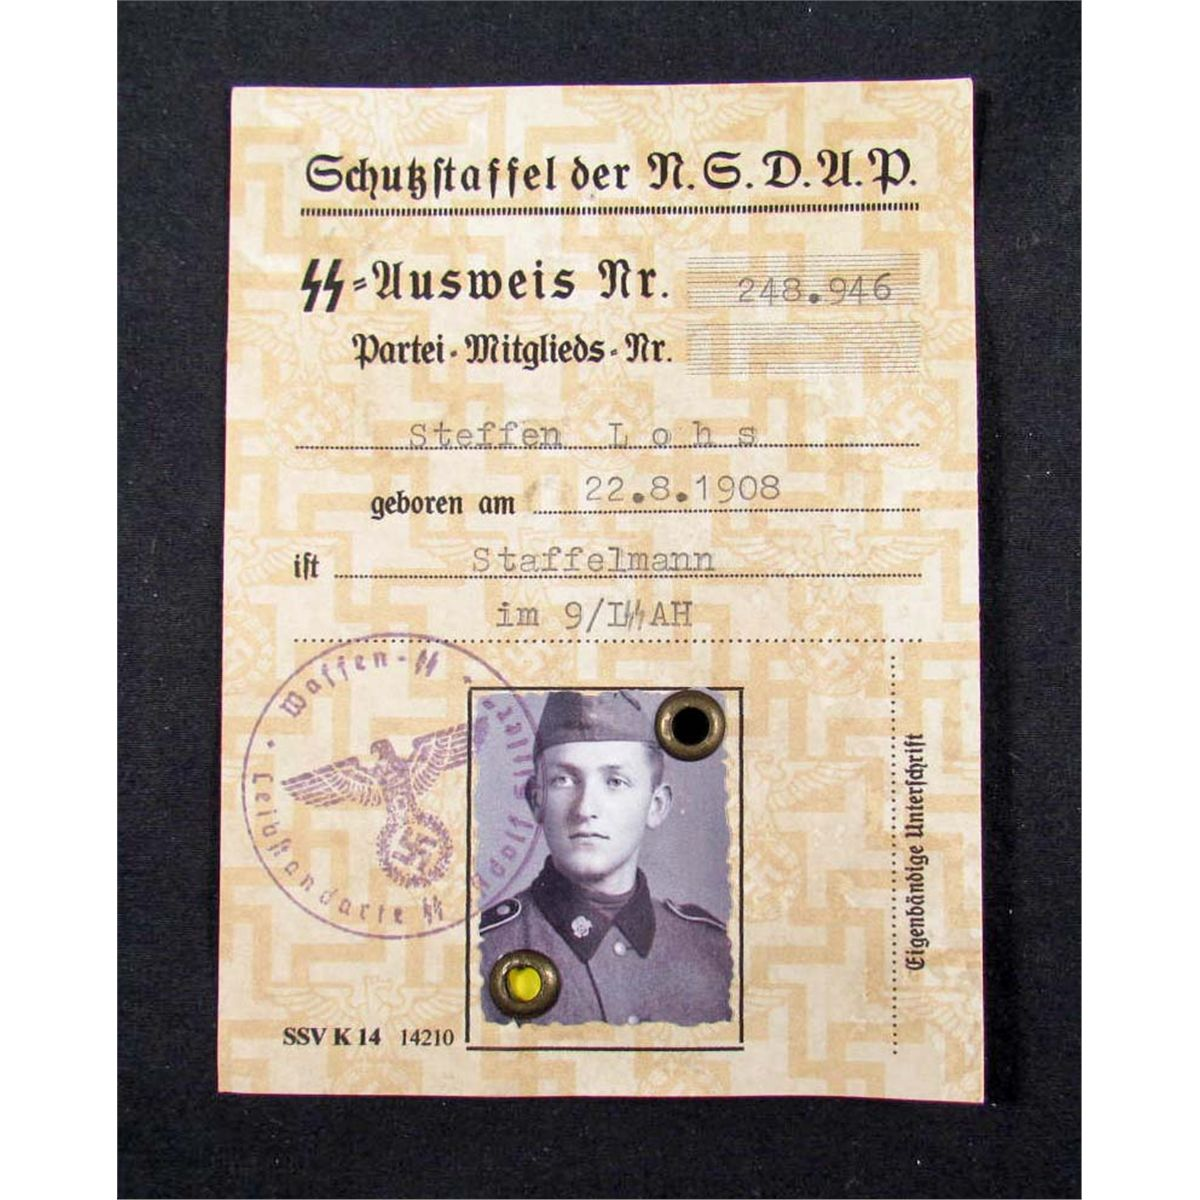 GERMAN NAZI ID DOCUMENT AUSWEIS OF THE SS-MAN W/ PHOTO